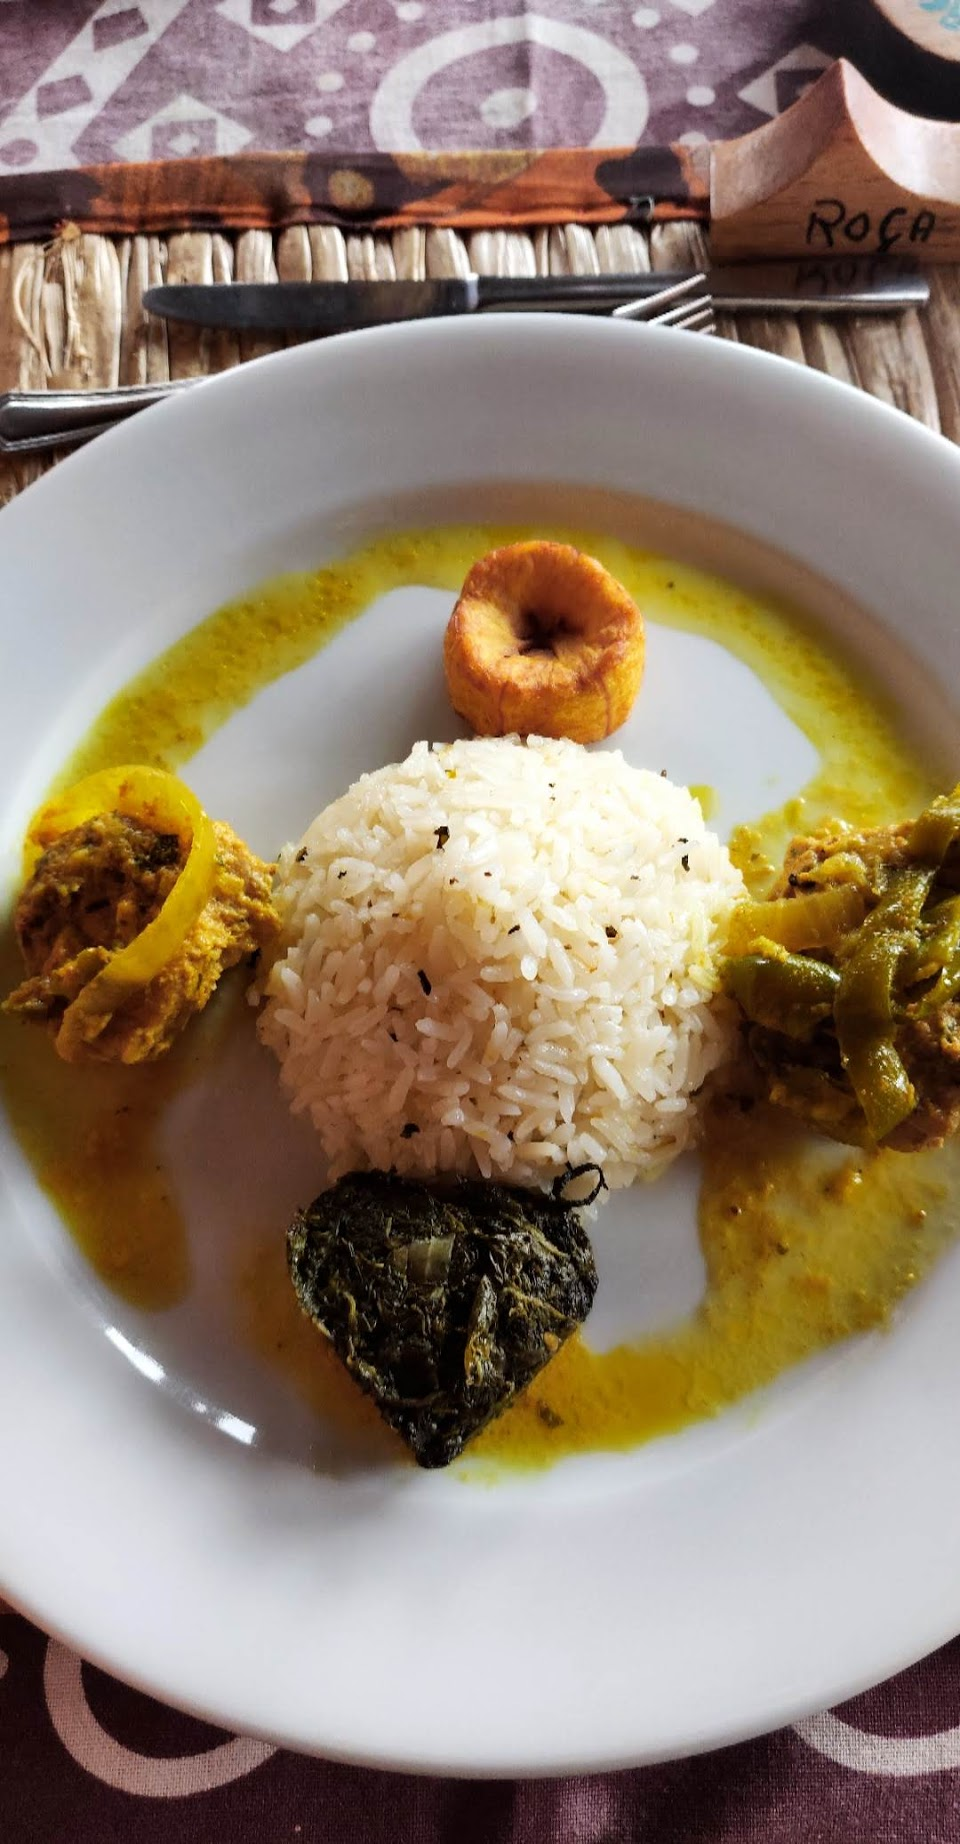 Where to eat in Sao Tome -Restaurante Casa Museu Almada